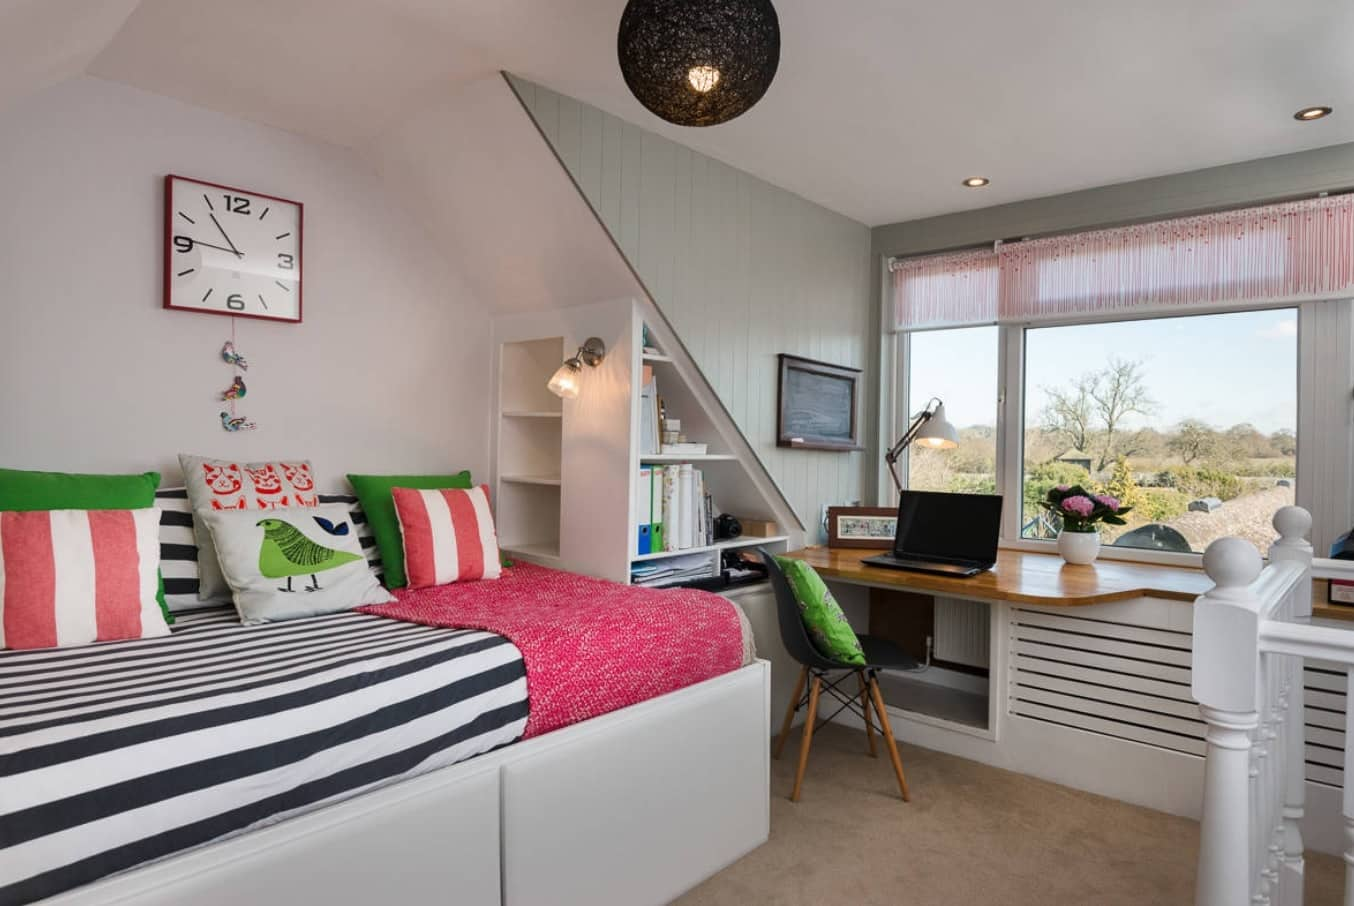 8 Best Loft Conversion Ideas for 2020. Another kids room idea with personal worplace and bed with storage